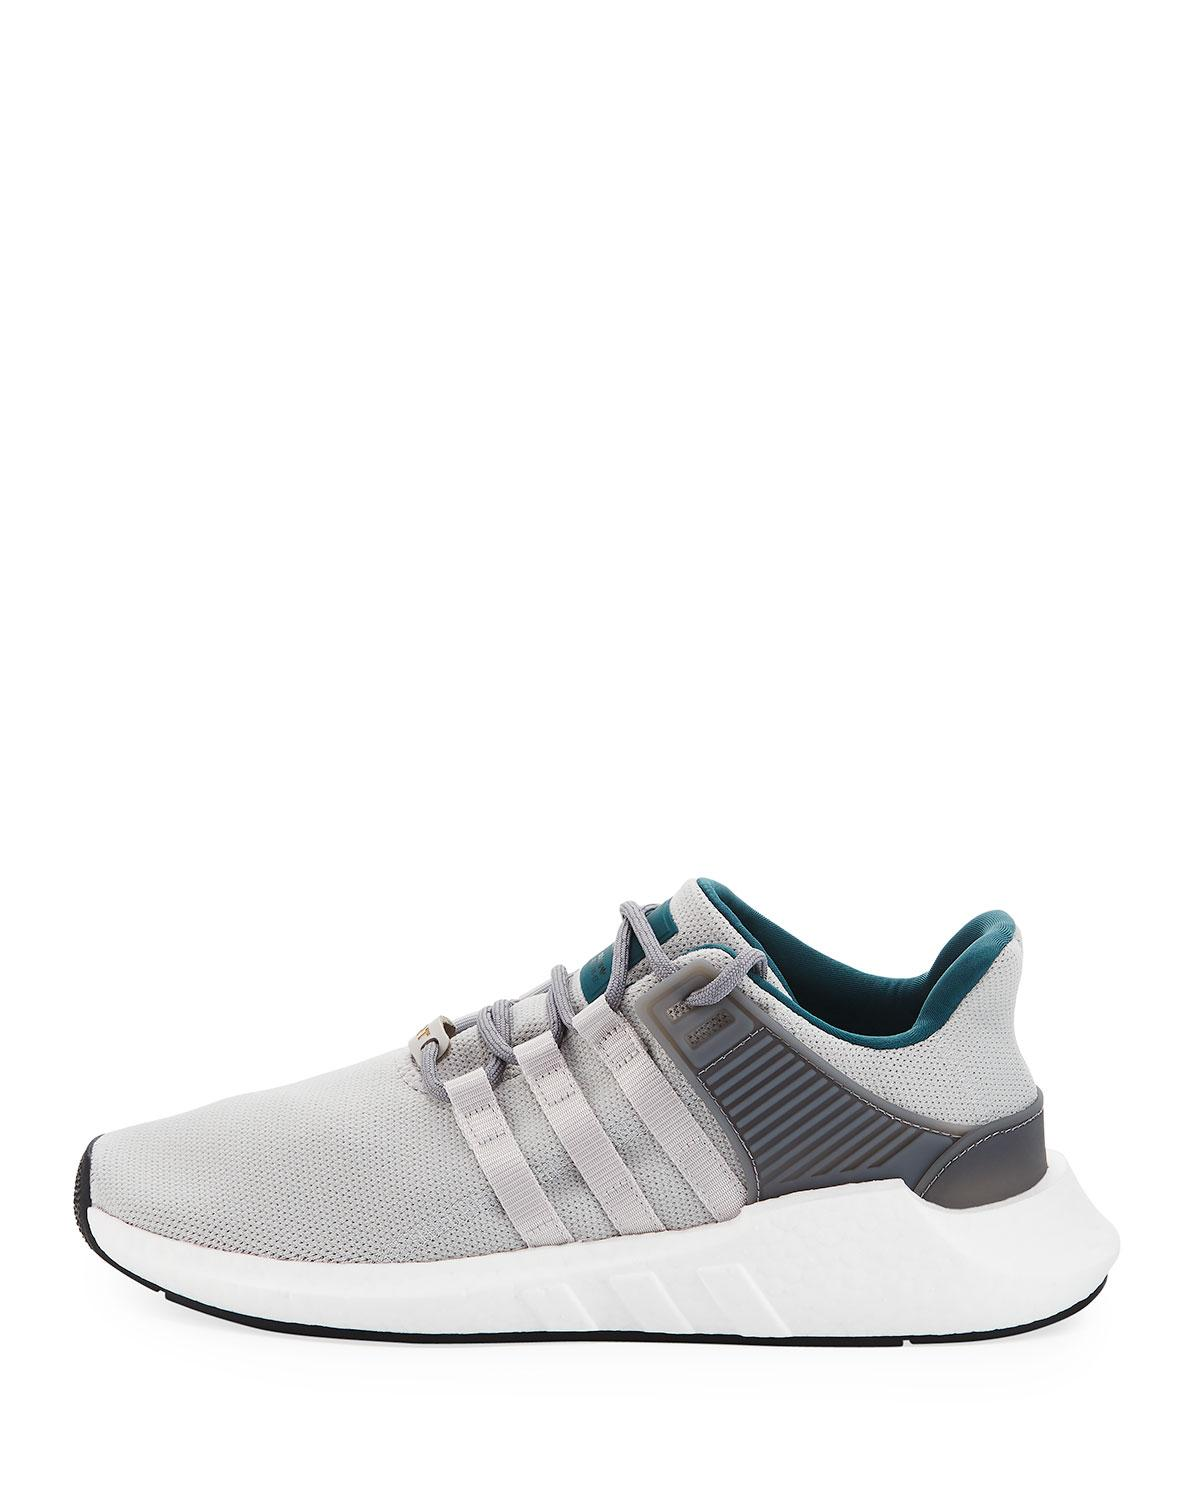 157df0fa2 Lyst - adidas Men s Eqt Support Adv 93-17 Sneakers Gray in Gray for Men